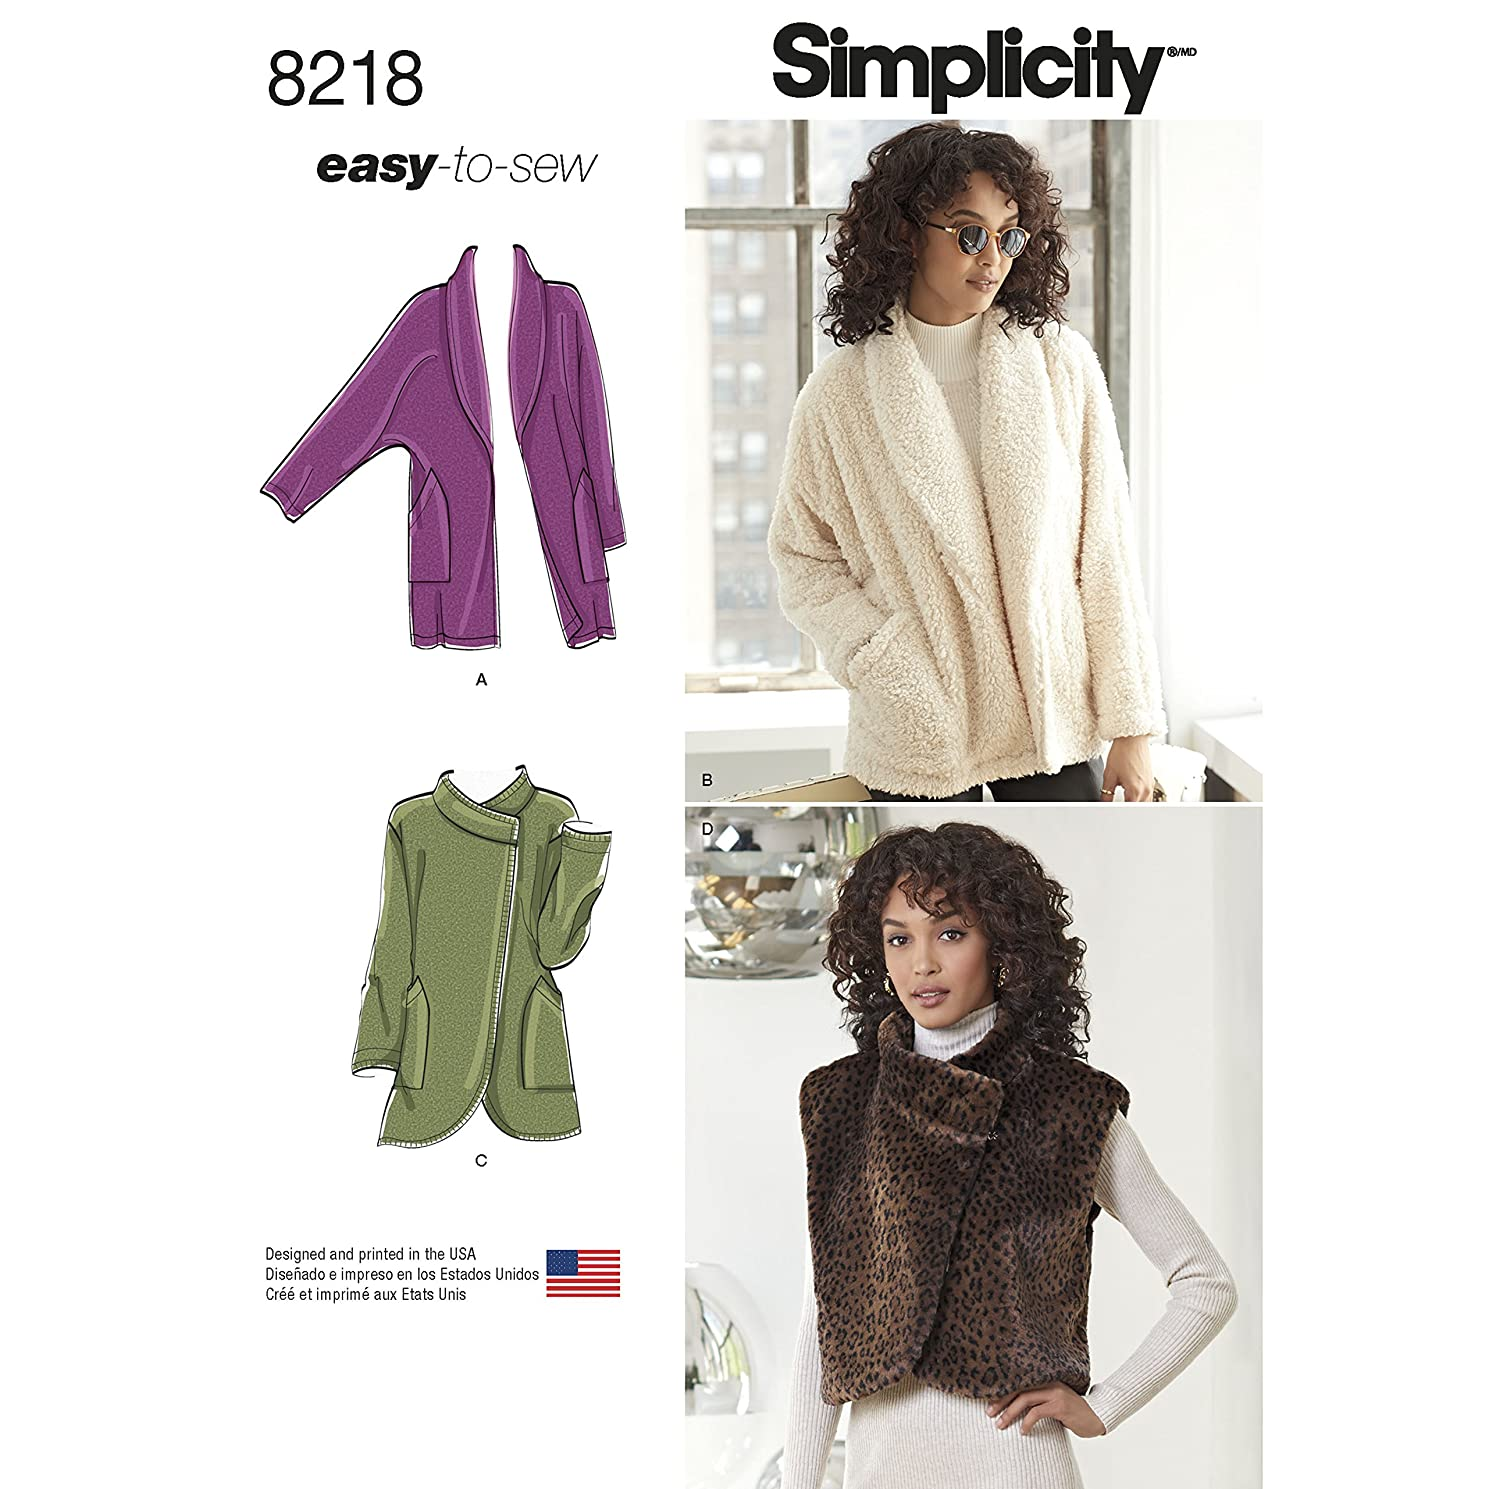 Simplicity Creative Patterns Simplicity Pattern 8218 Misses' Easy-to-Sew Jackets and Vest